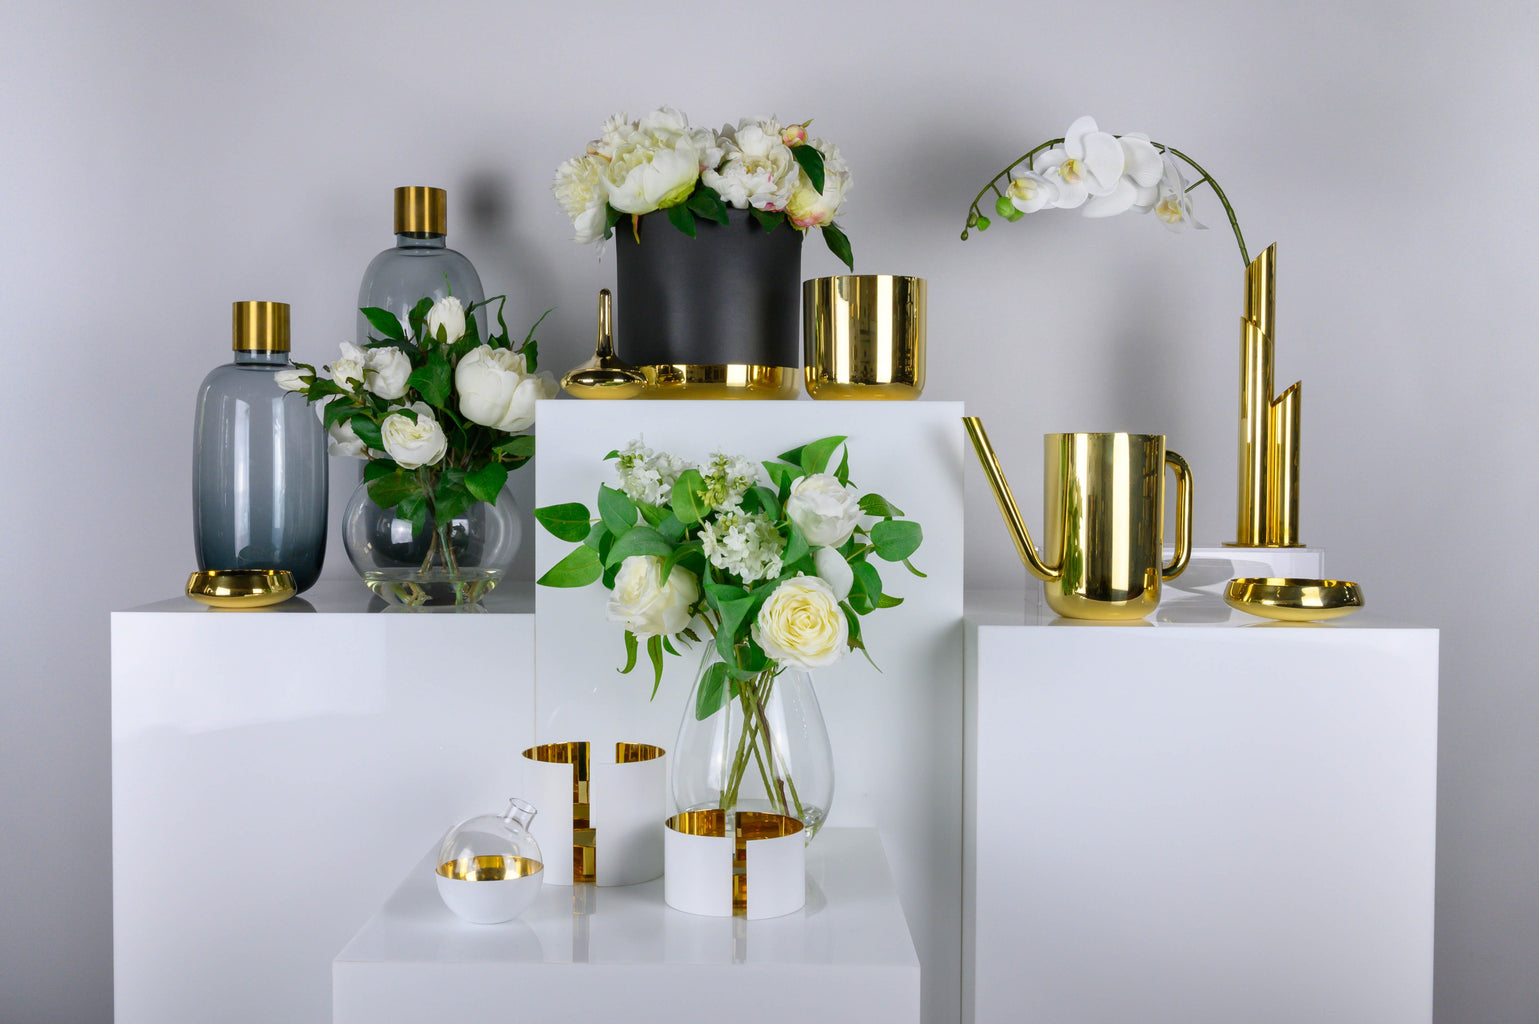 Skultuna brass objects: nurture pot plant hodlers and watering can, infinity candle holders, belle jewellery holder, damejeanne vases